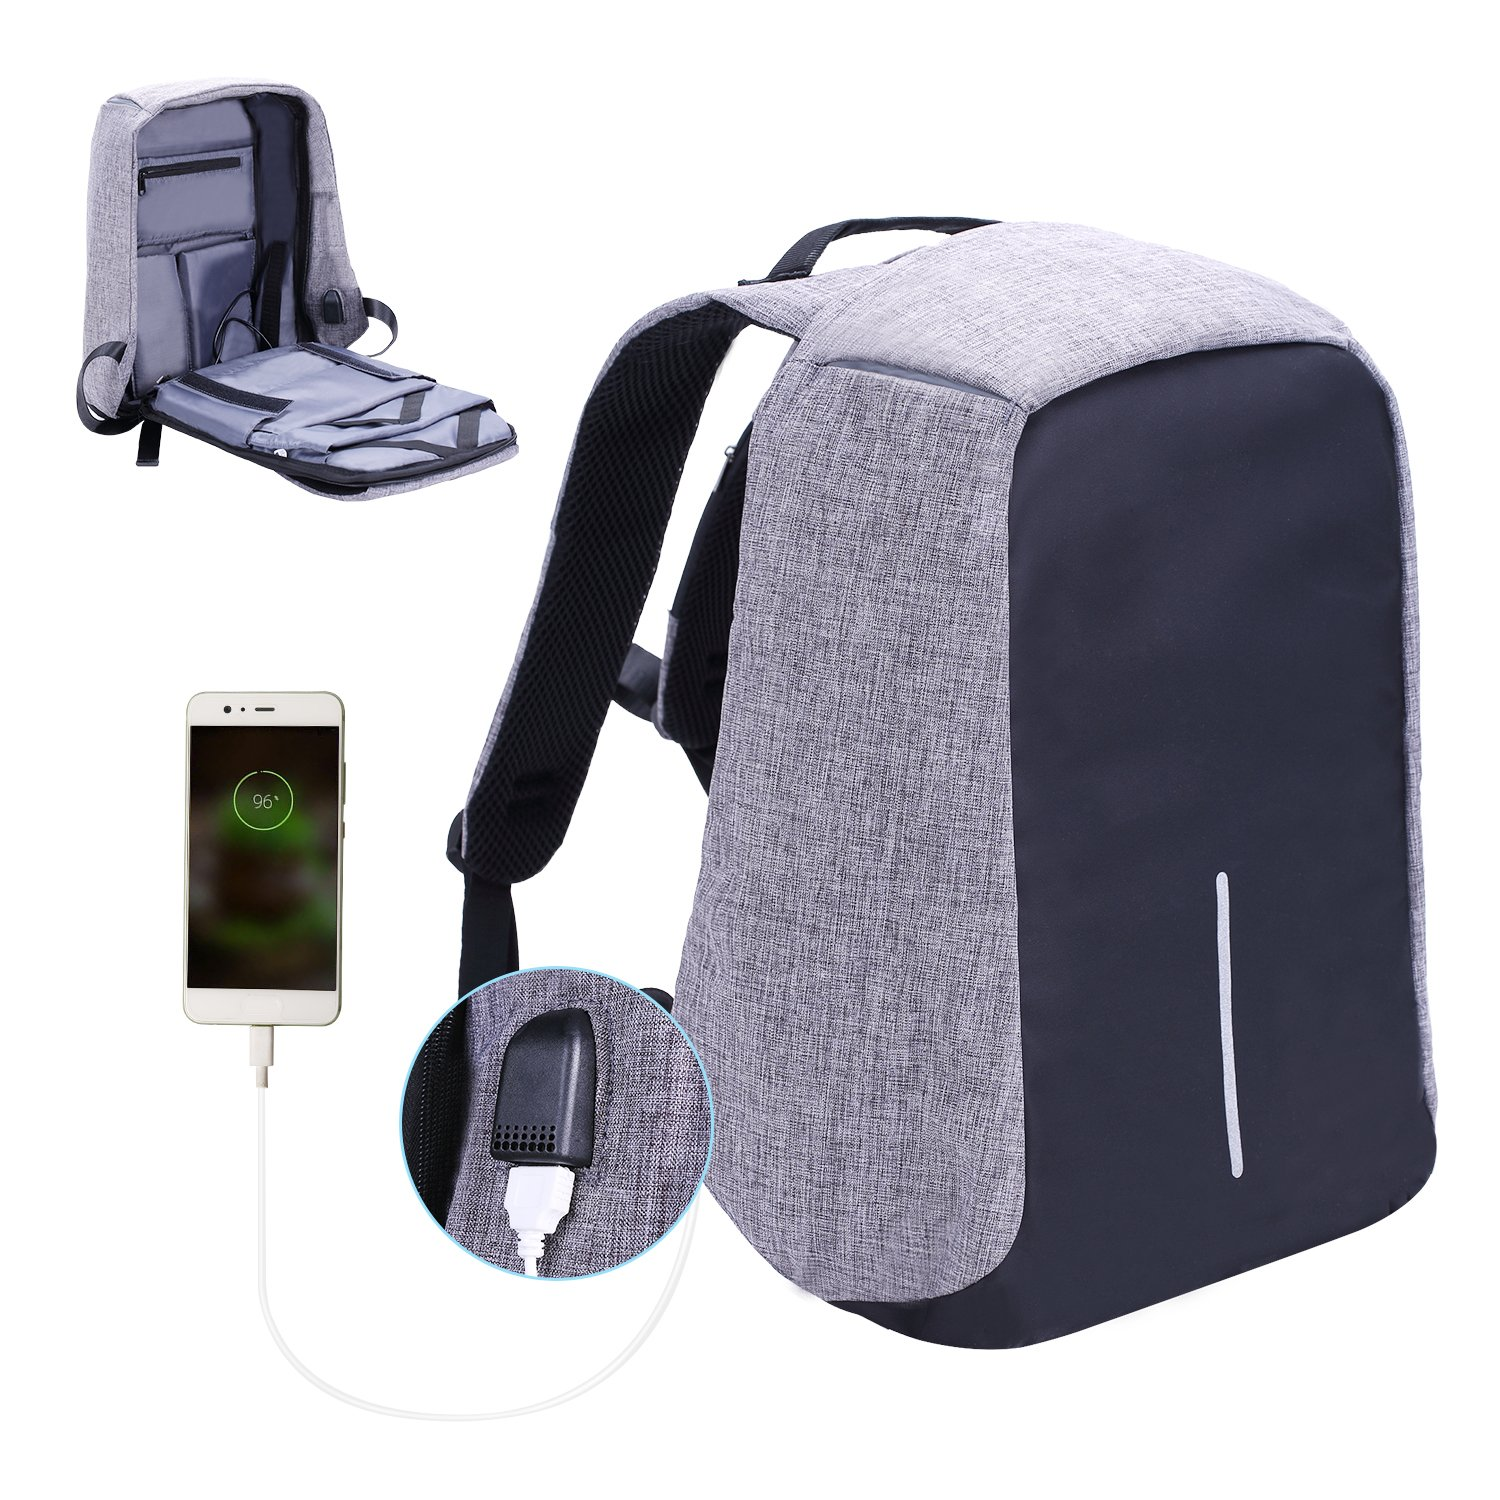 Laptop Backpack, Lightweight Water Resistant Computer Backpack with USB Charging Port Large Capacity for Travel,Business